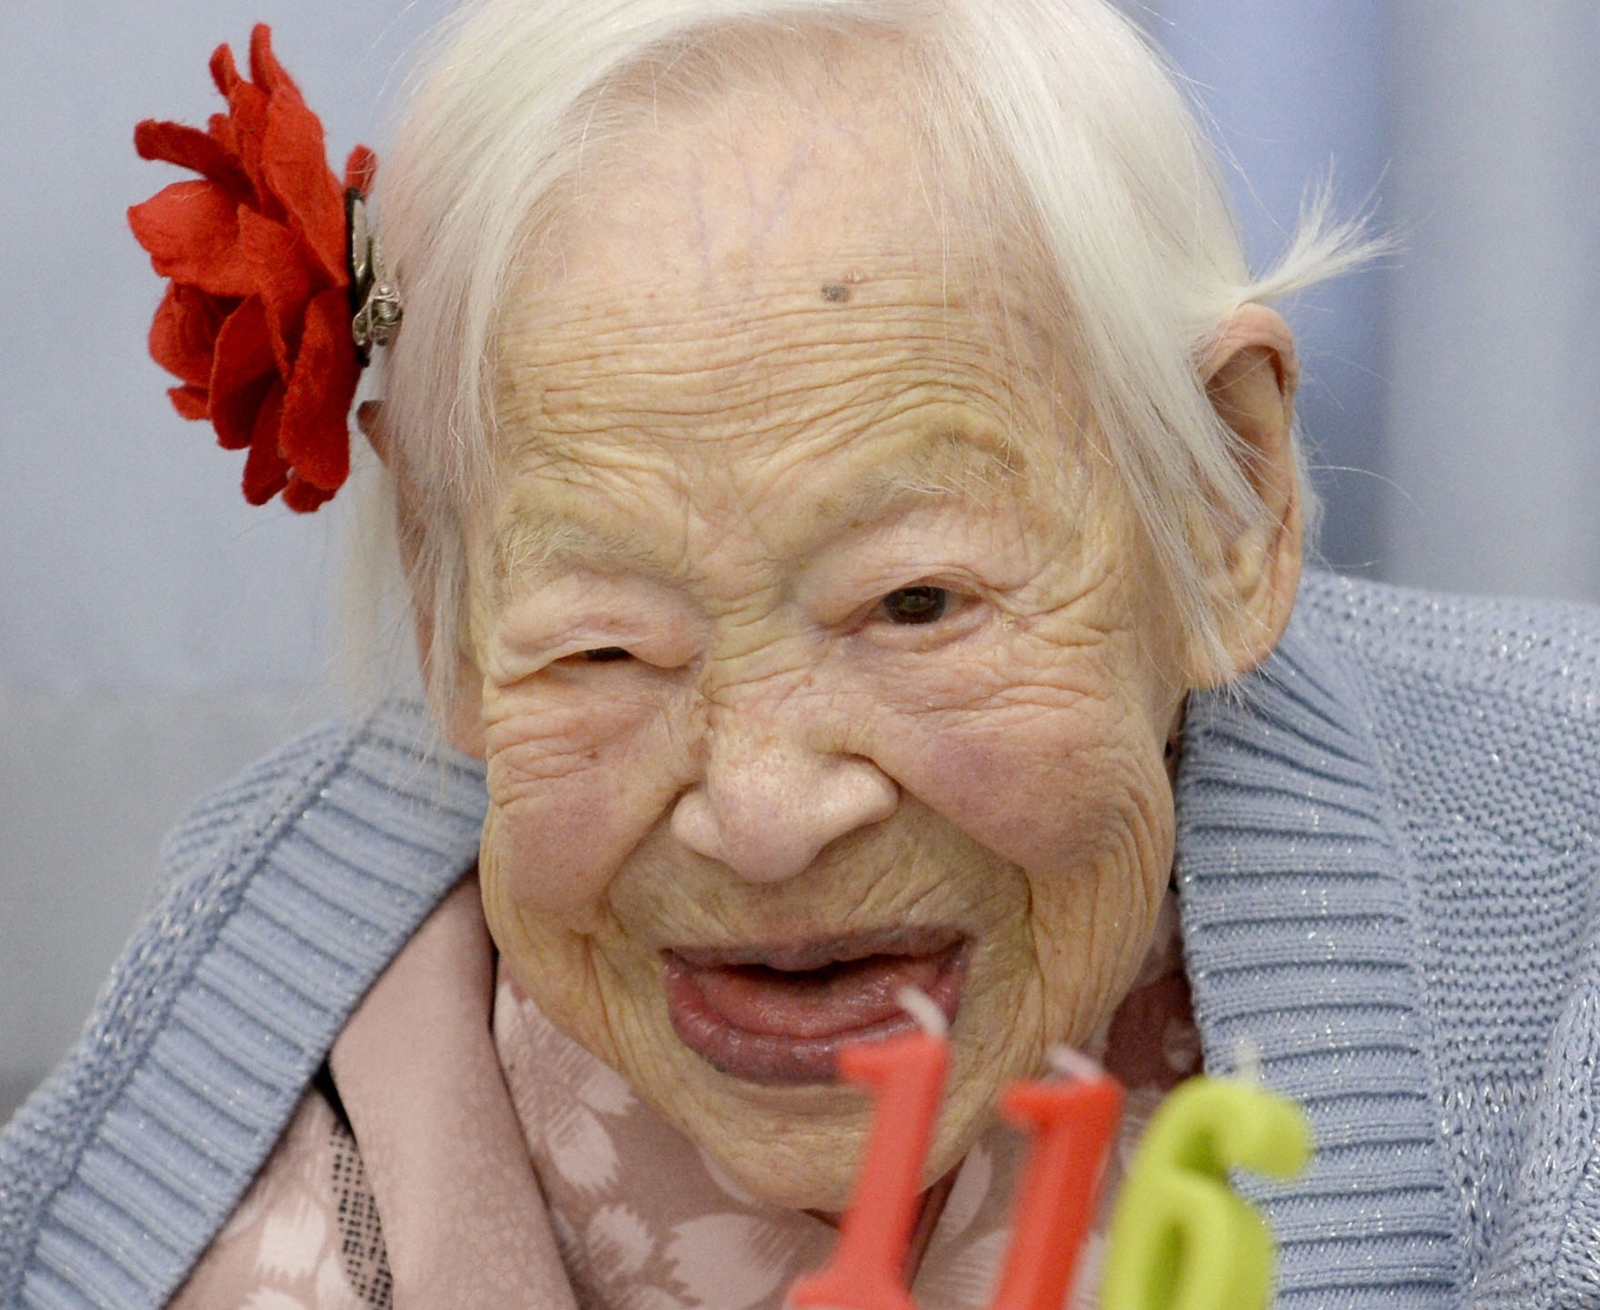 Here's a reason not to smile: it makes you look older